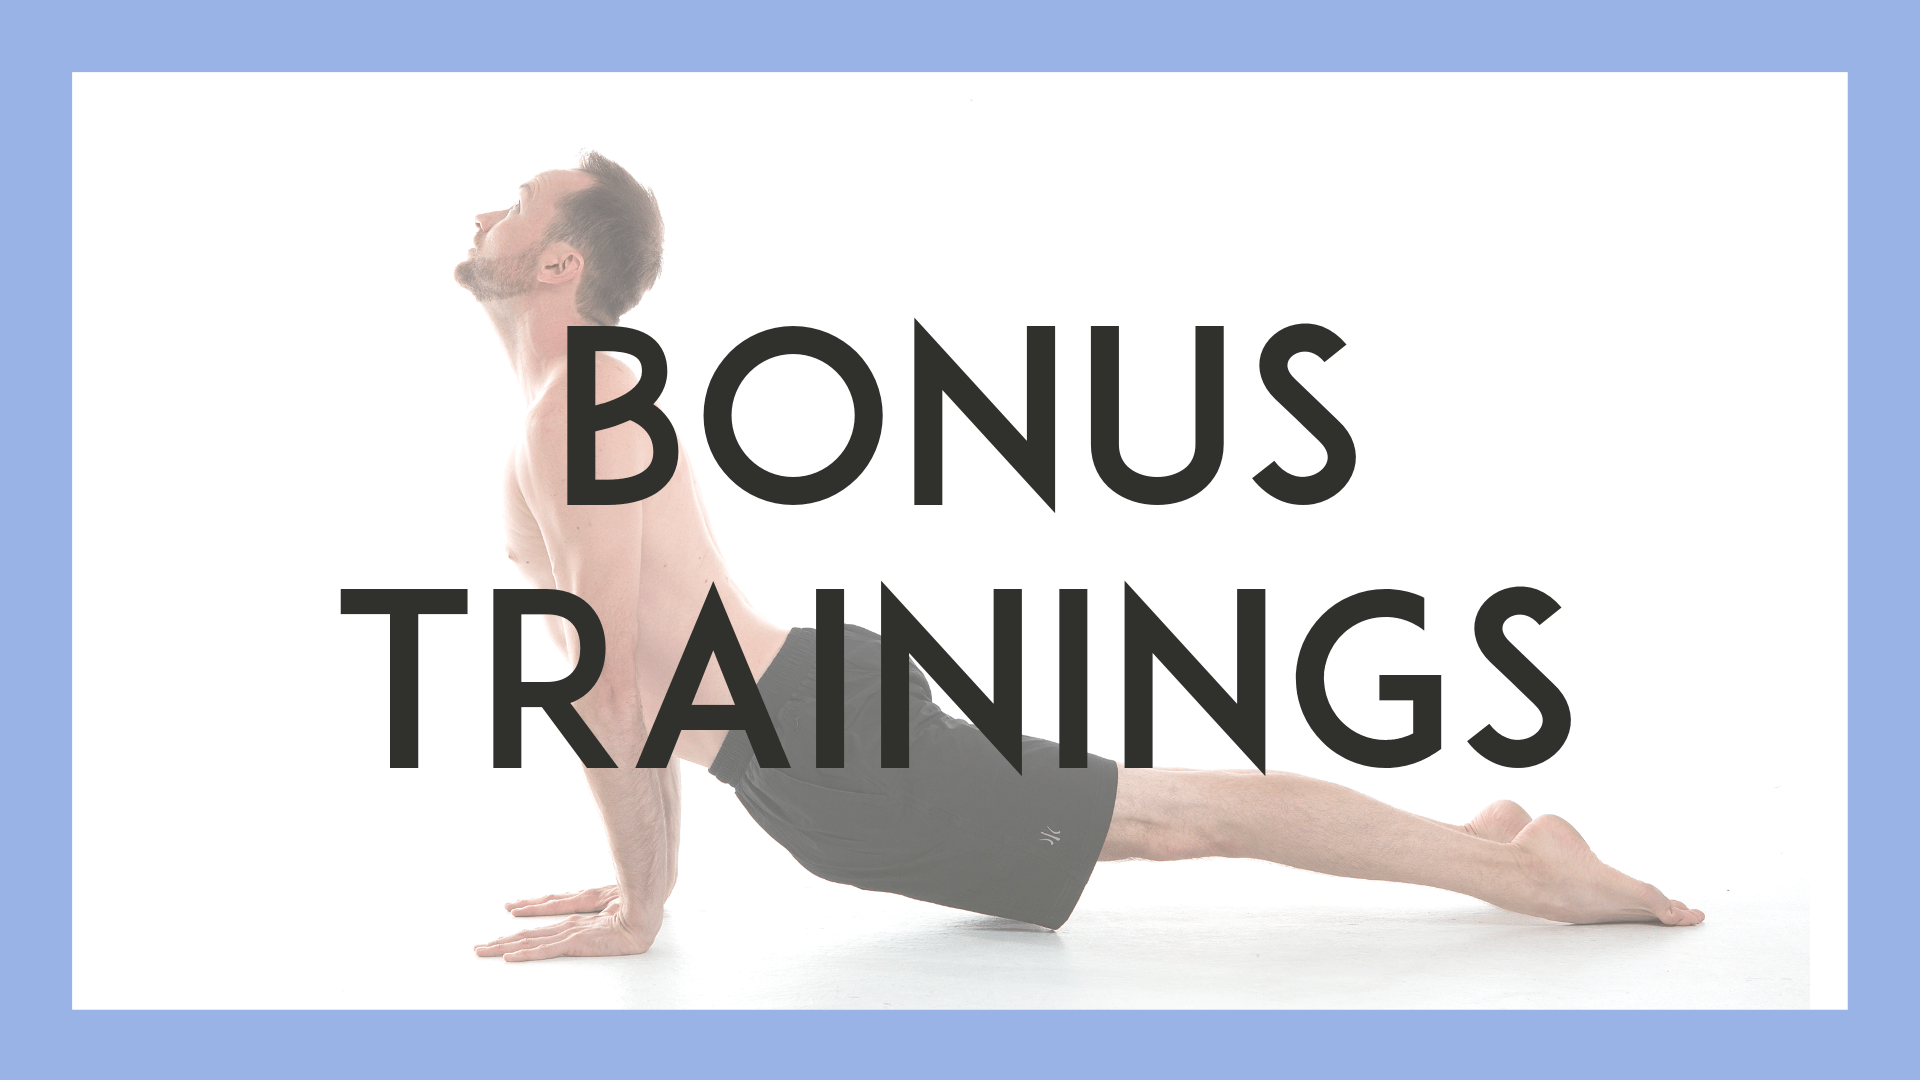 Image of Bonus Trainings